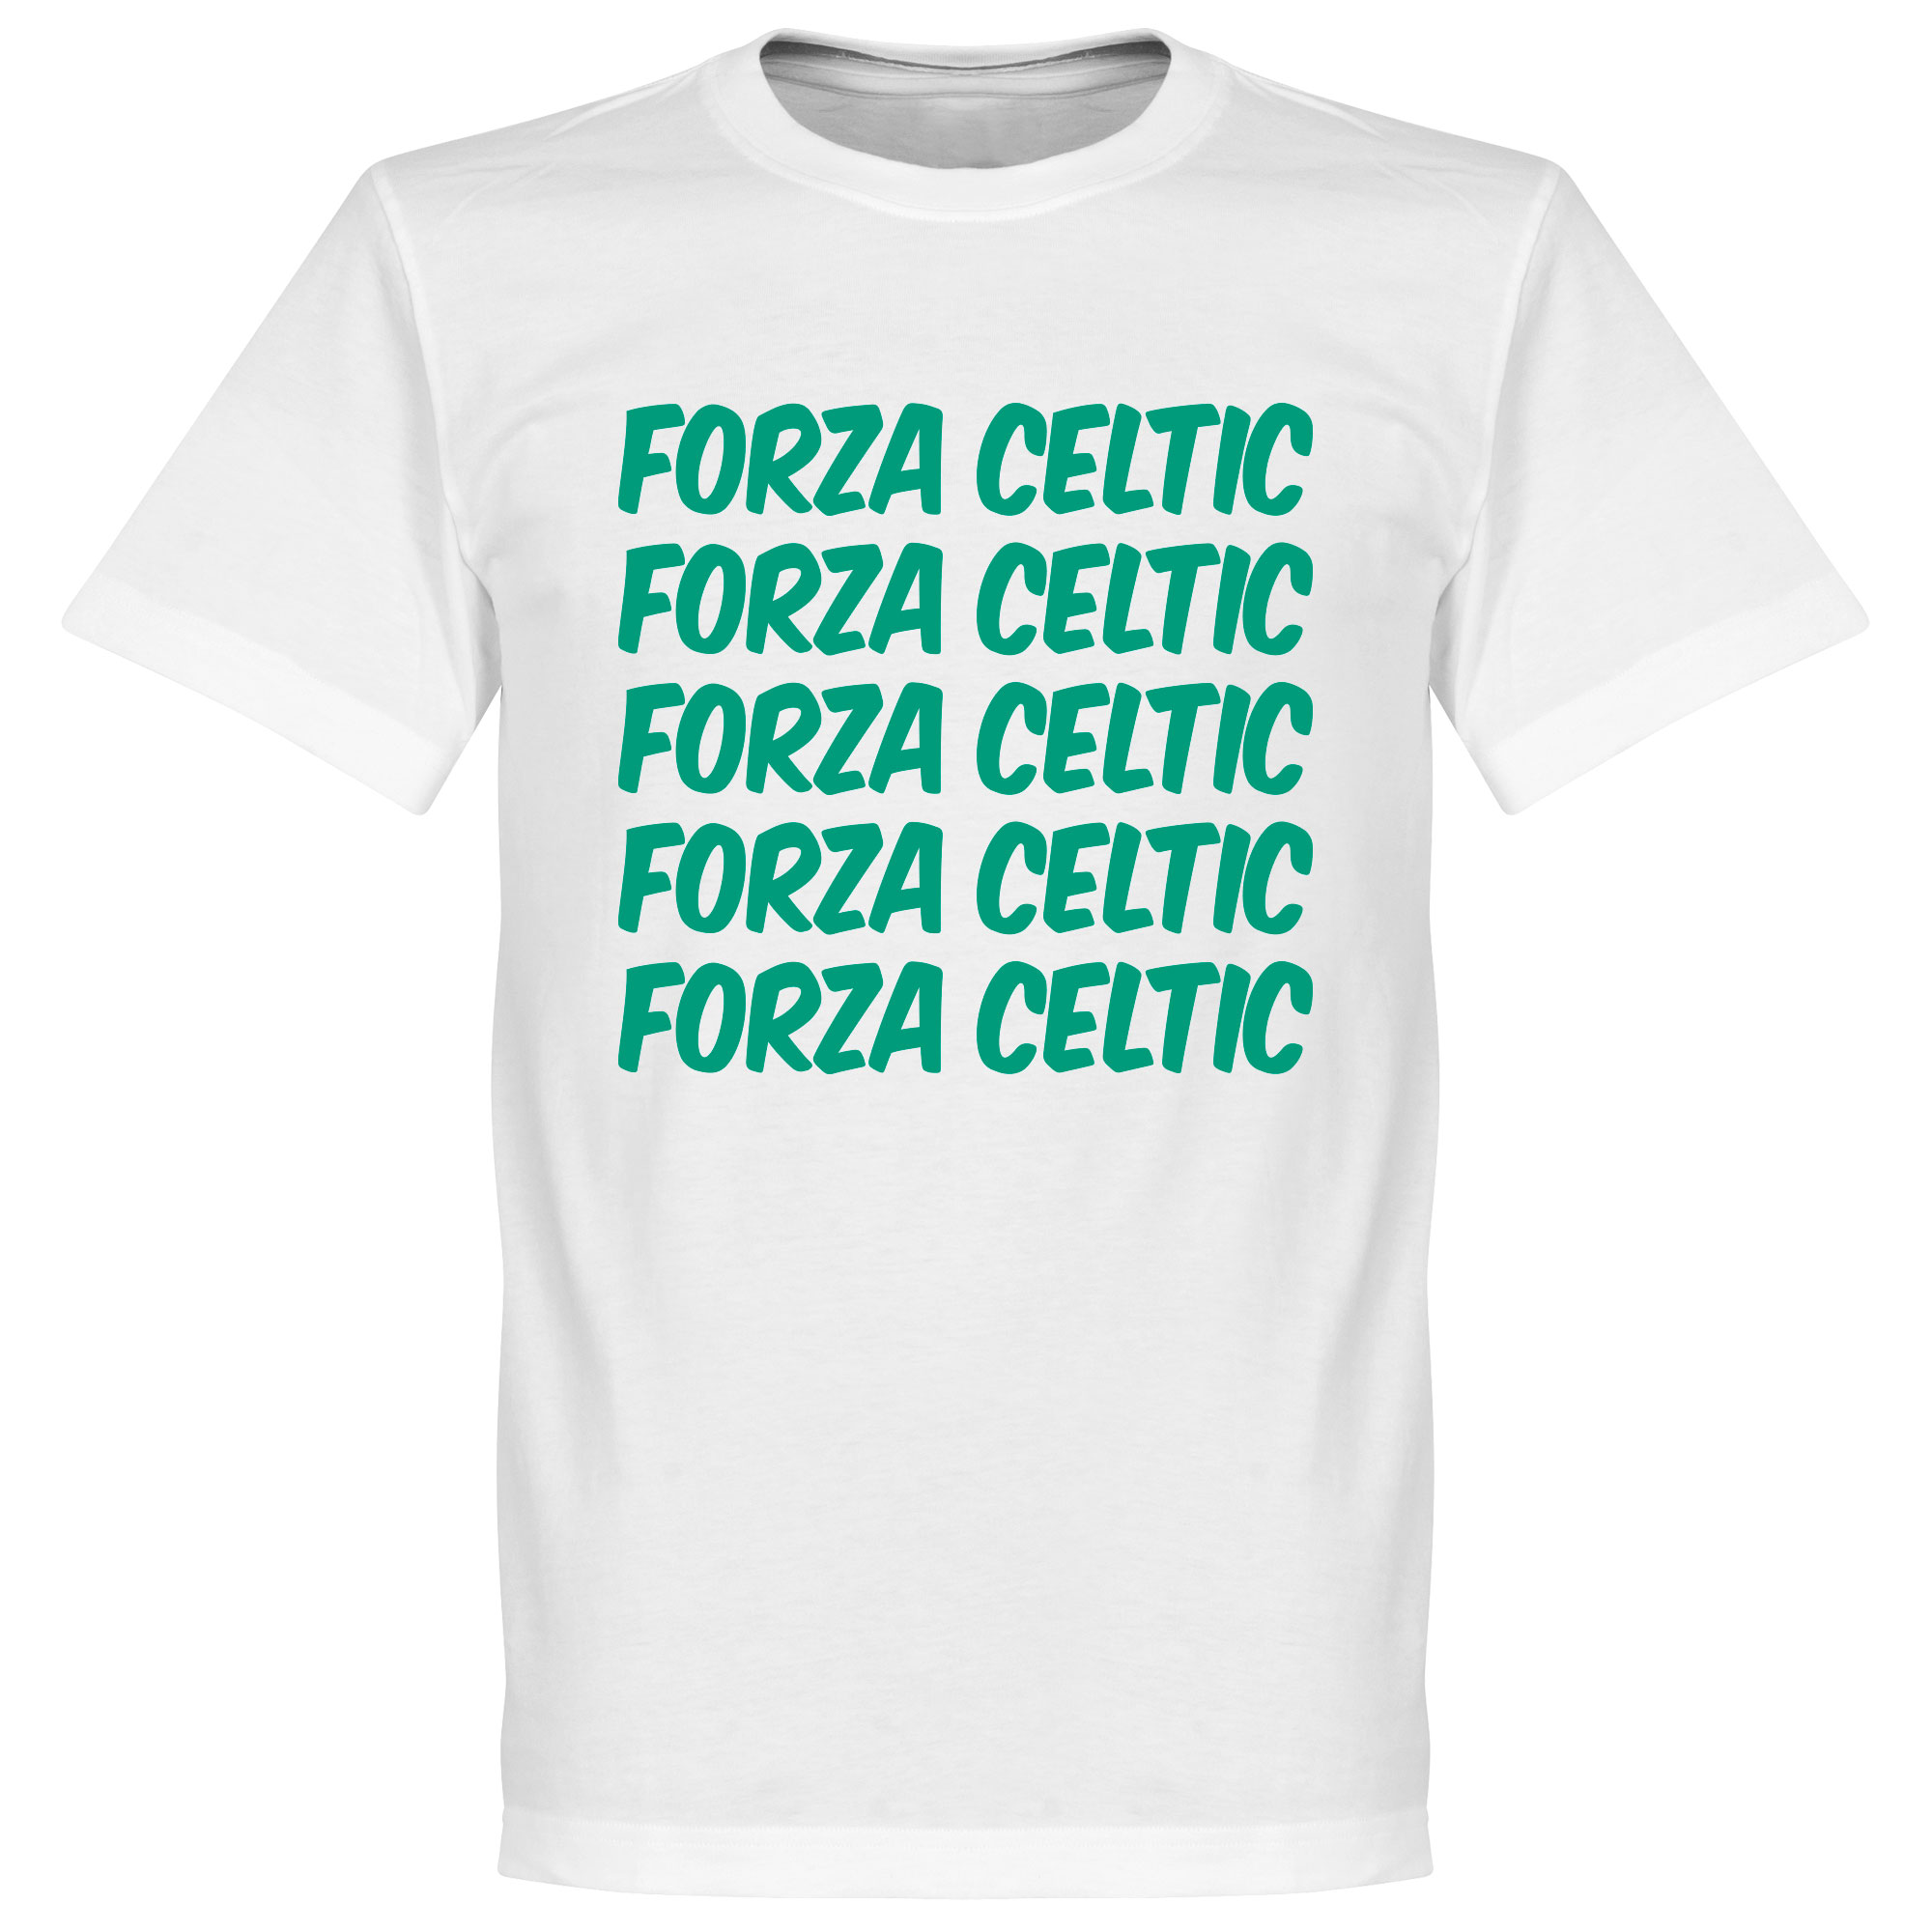 Forza Celtic Tee - White - XS